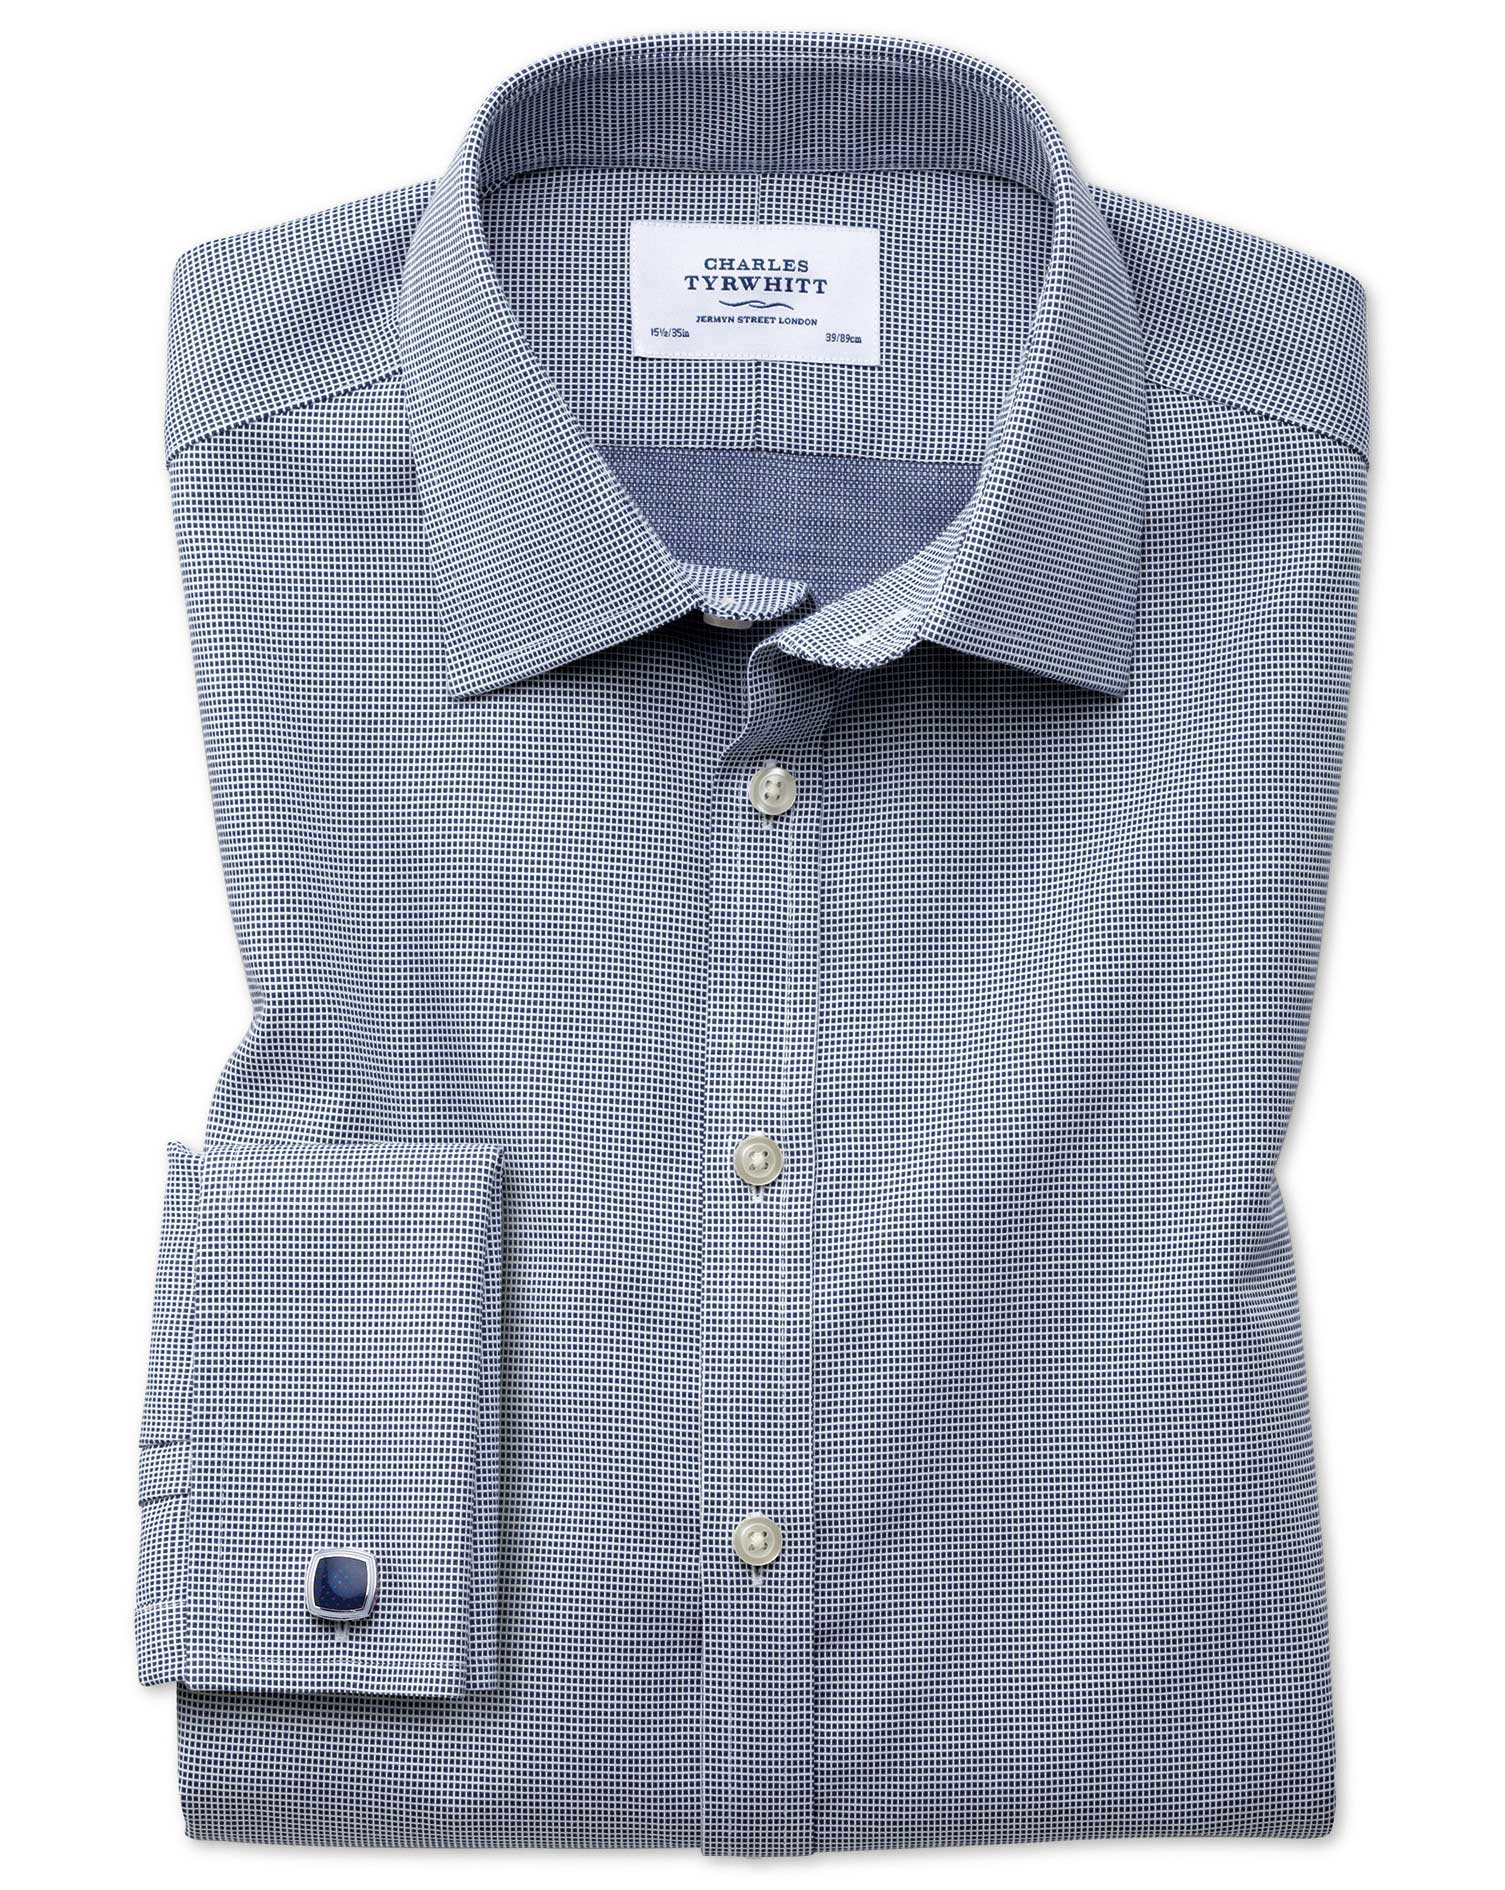 Slim Fit Non-Iron Square Weave Navy Blue Cotton Formal Shirt Double Cuff Size 15/33 by Charles Tyrwh